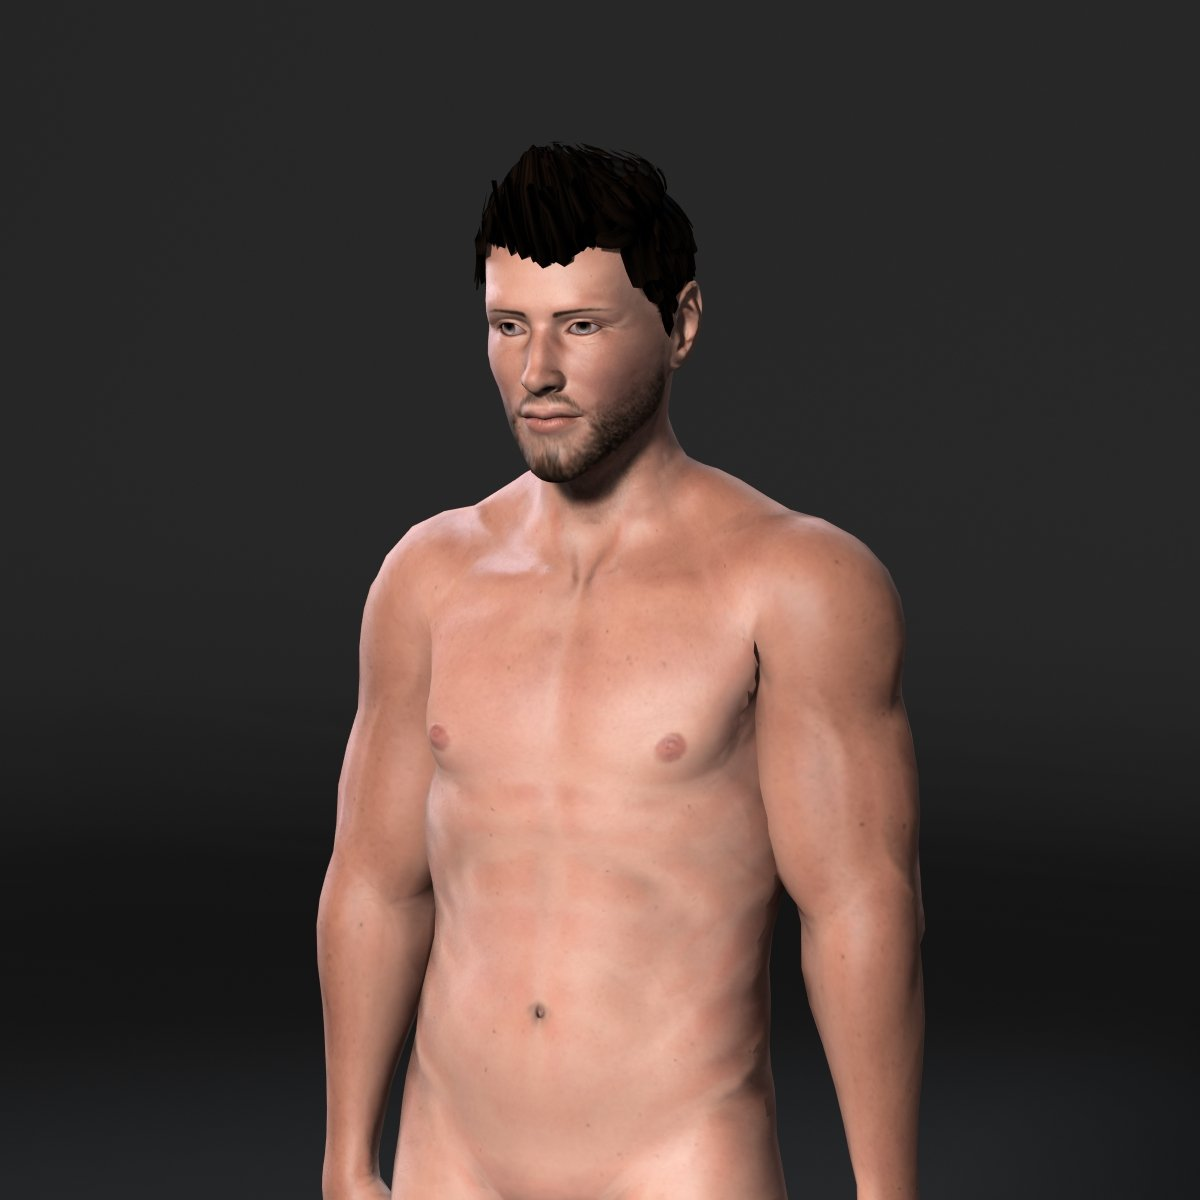 Animated Muscular Naked Man-Rigged 3d game character Low